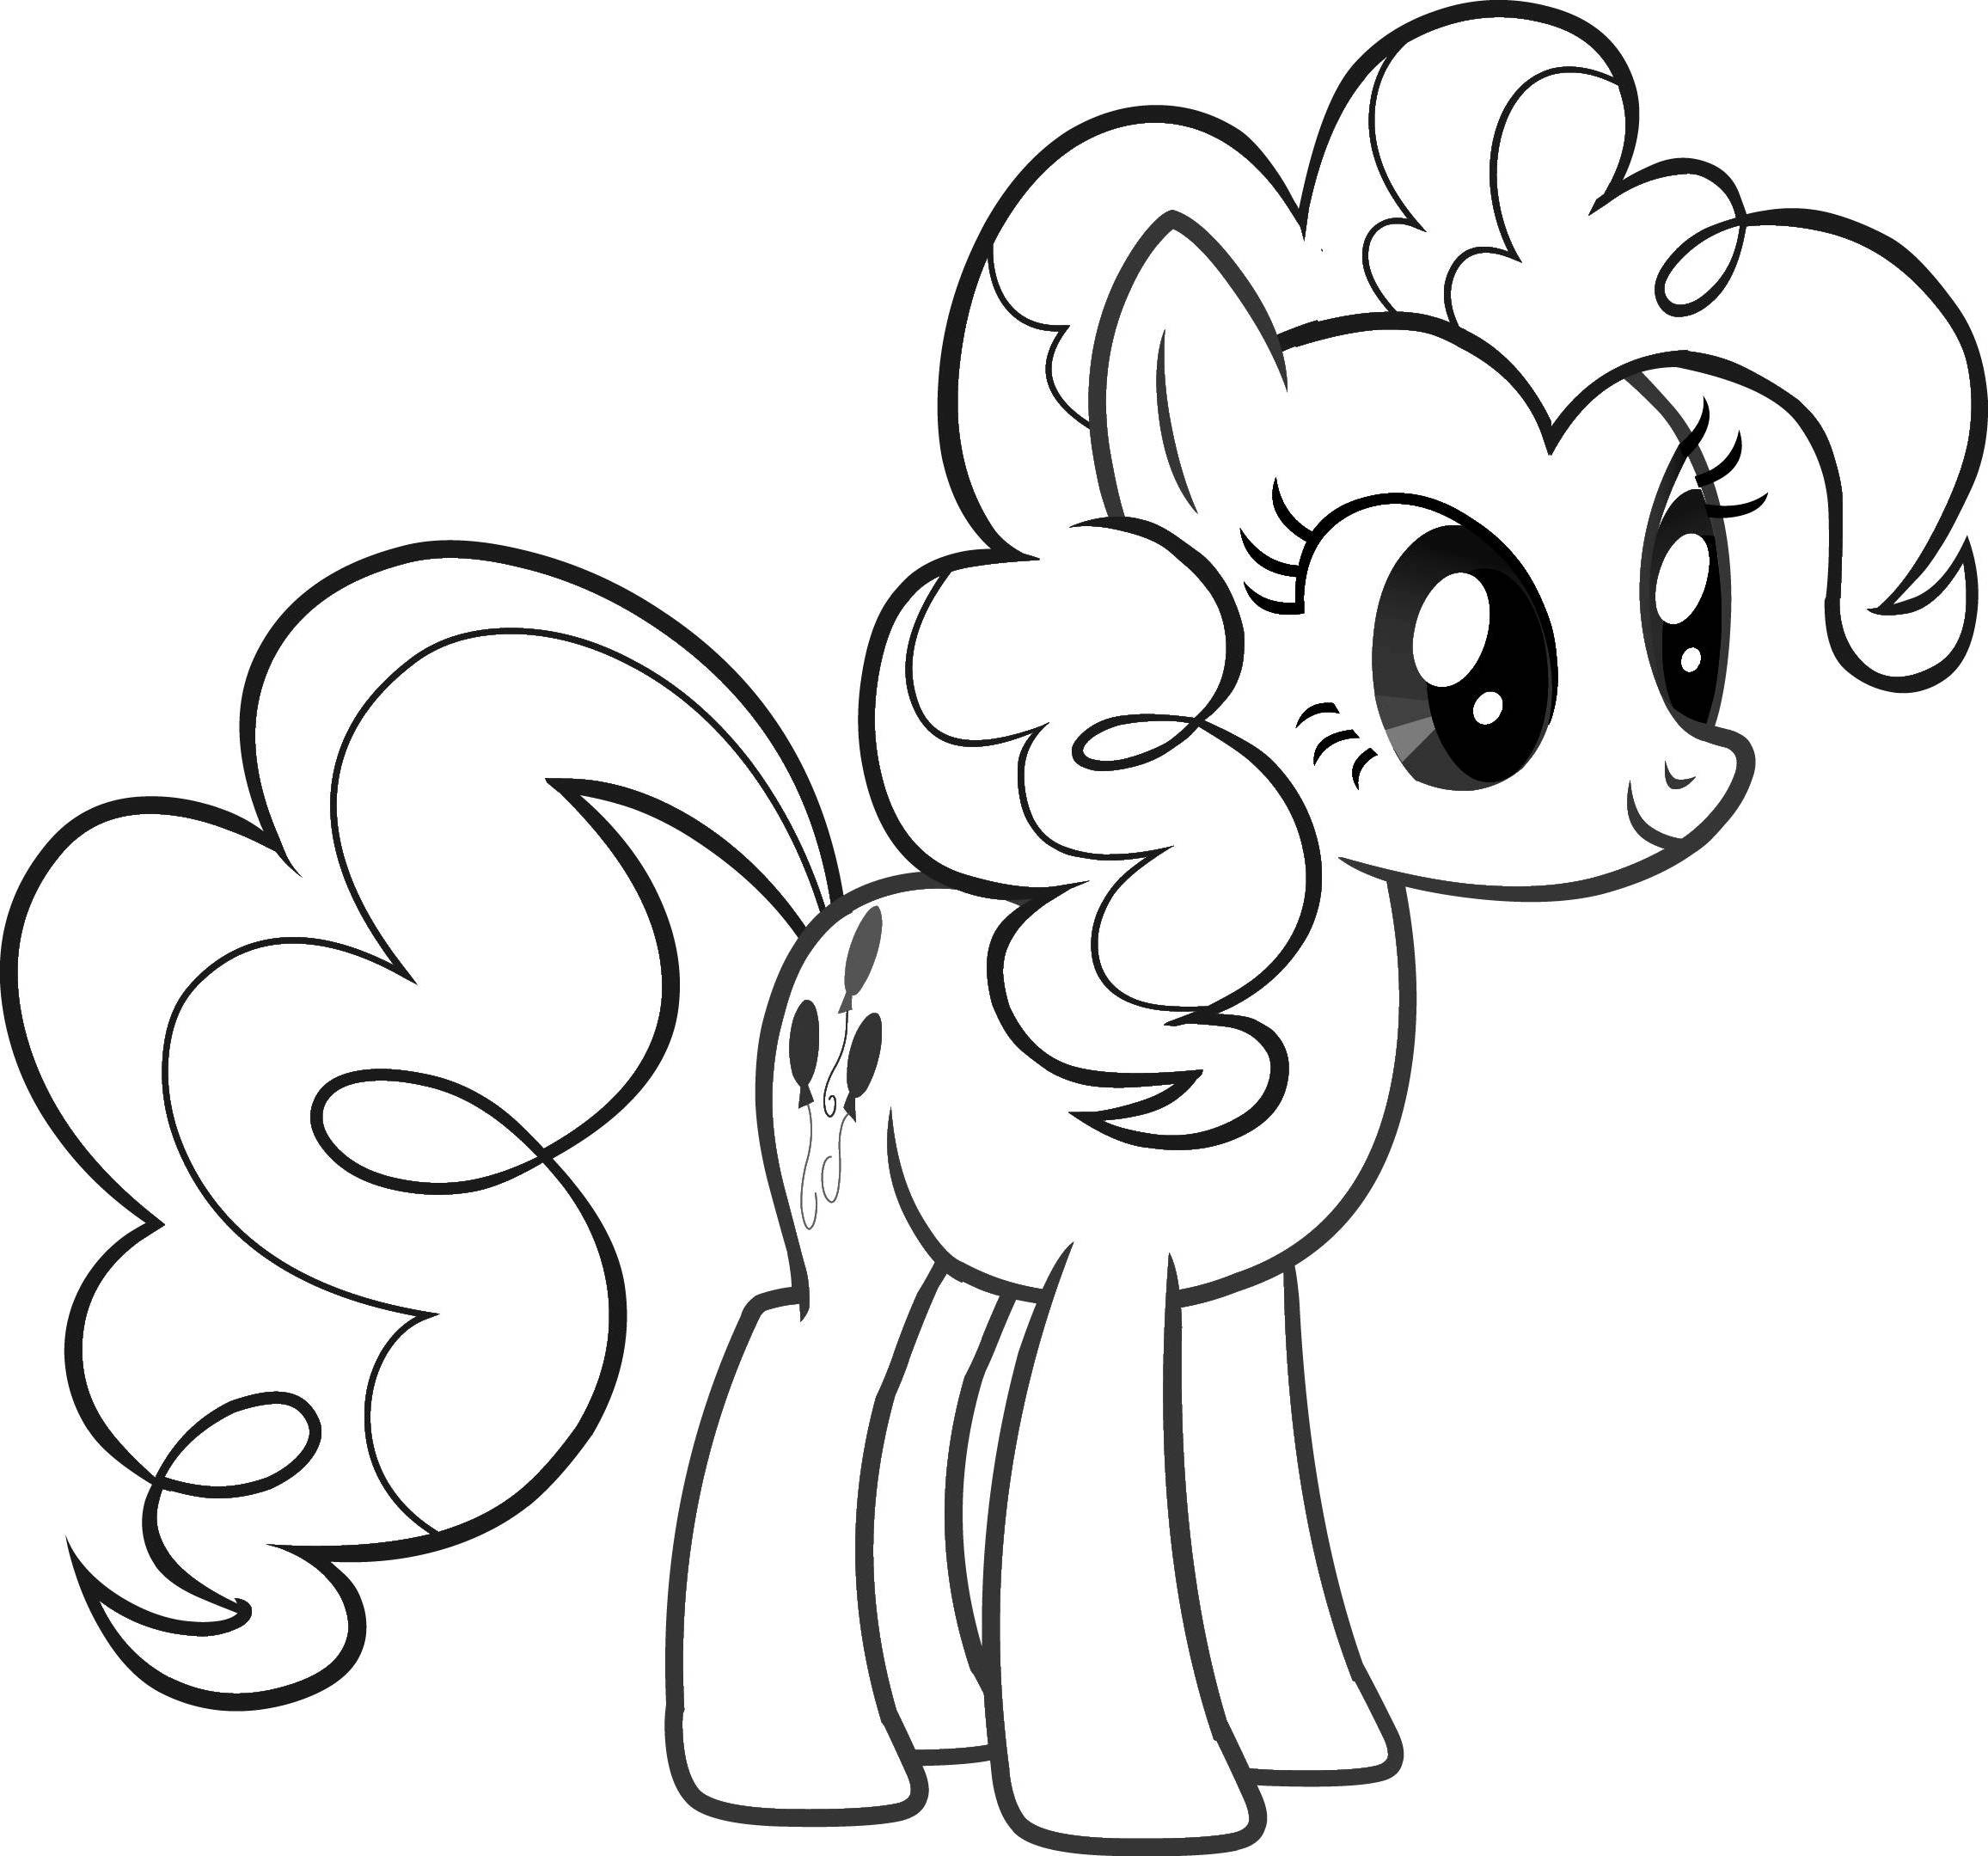 coloring printable cartoon characters cartoon network coloring pages download and print for free cartoon printable coloring characters